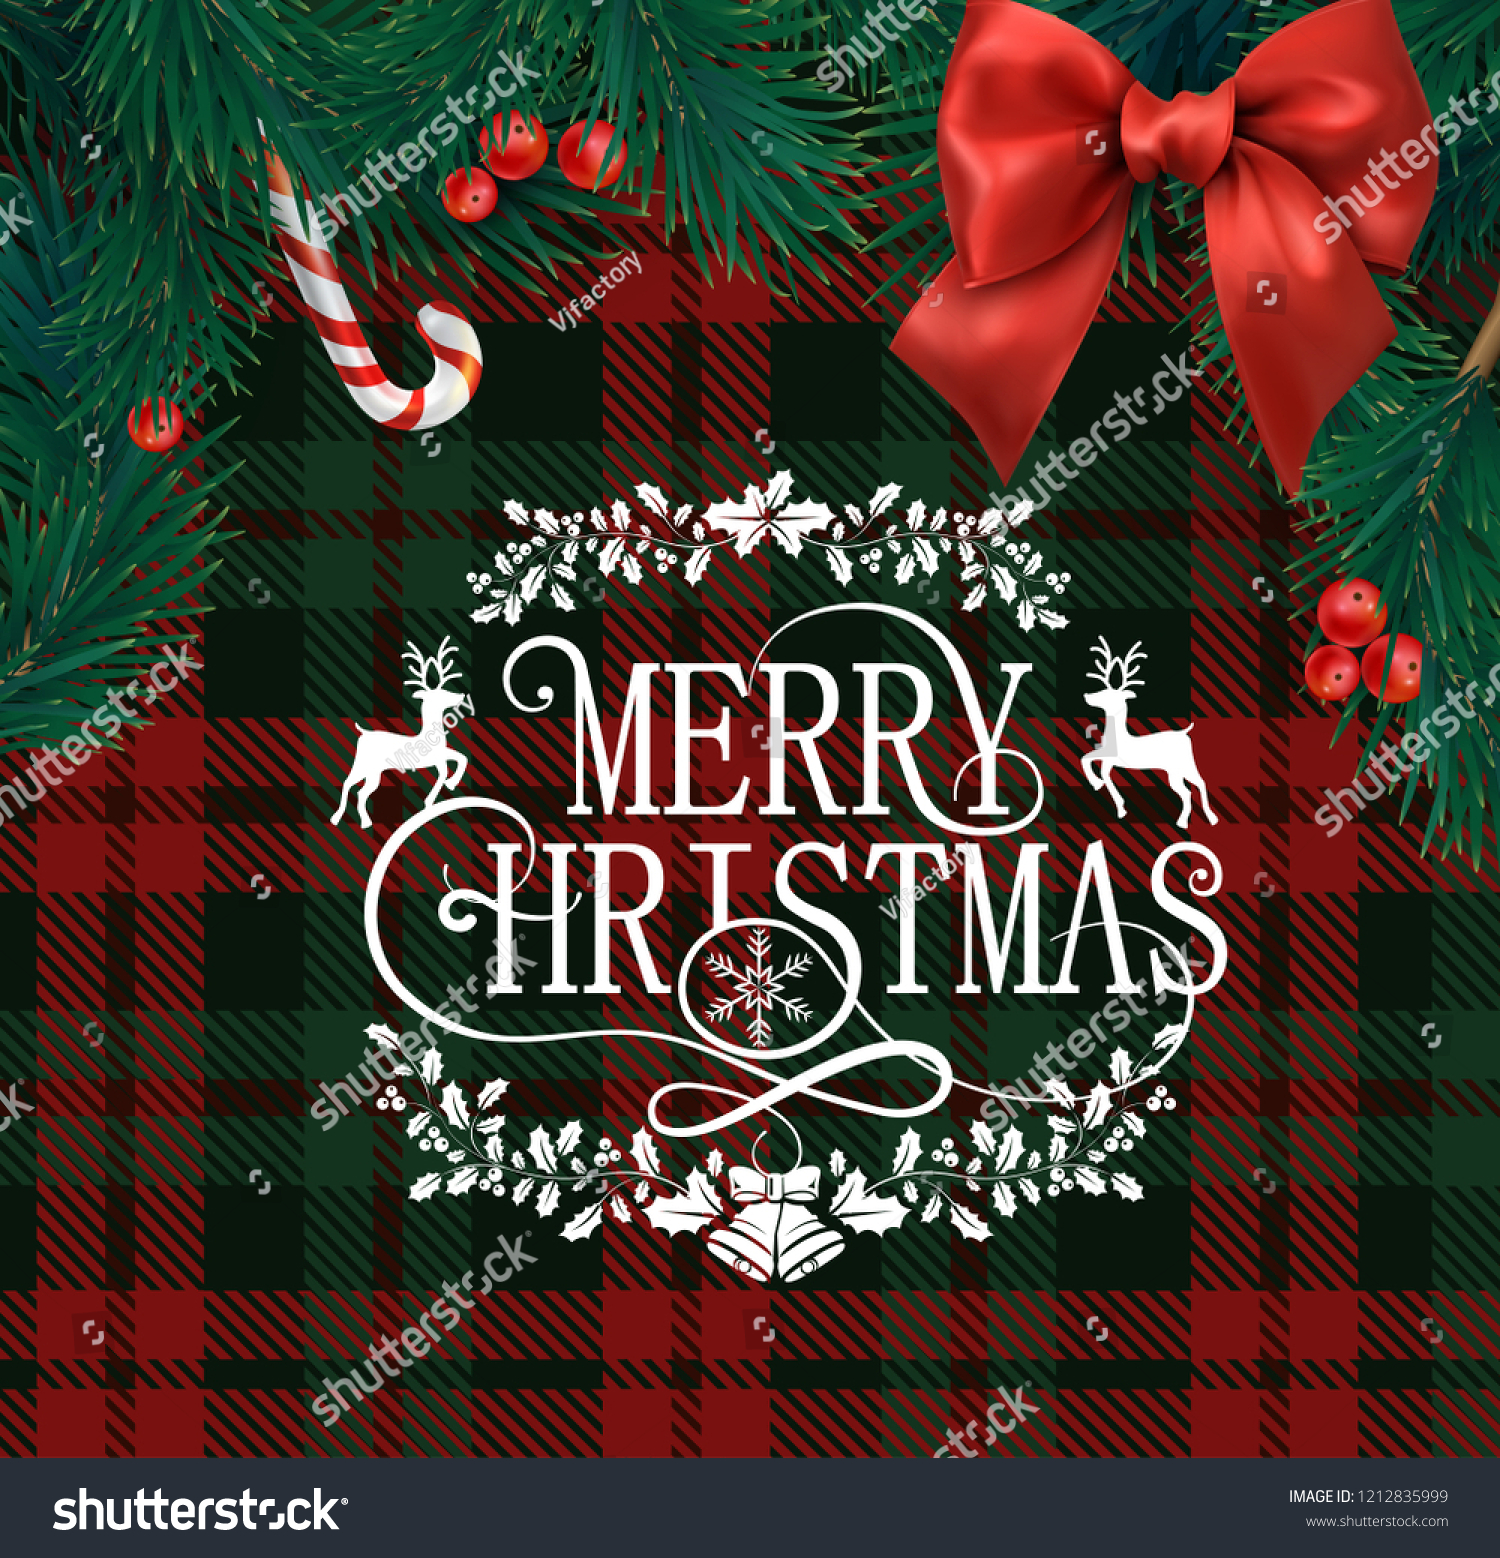 merry christmas greeting card with scottish red and green checkered pattern fir branches holly